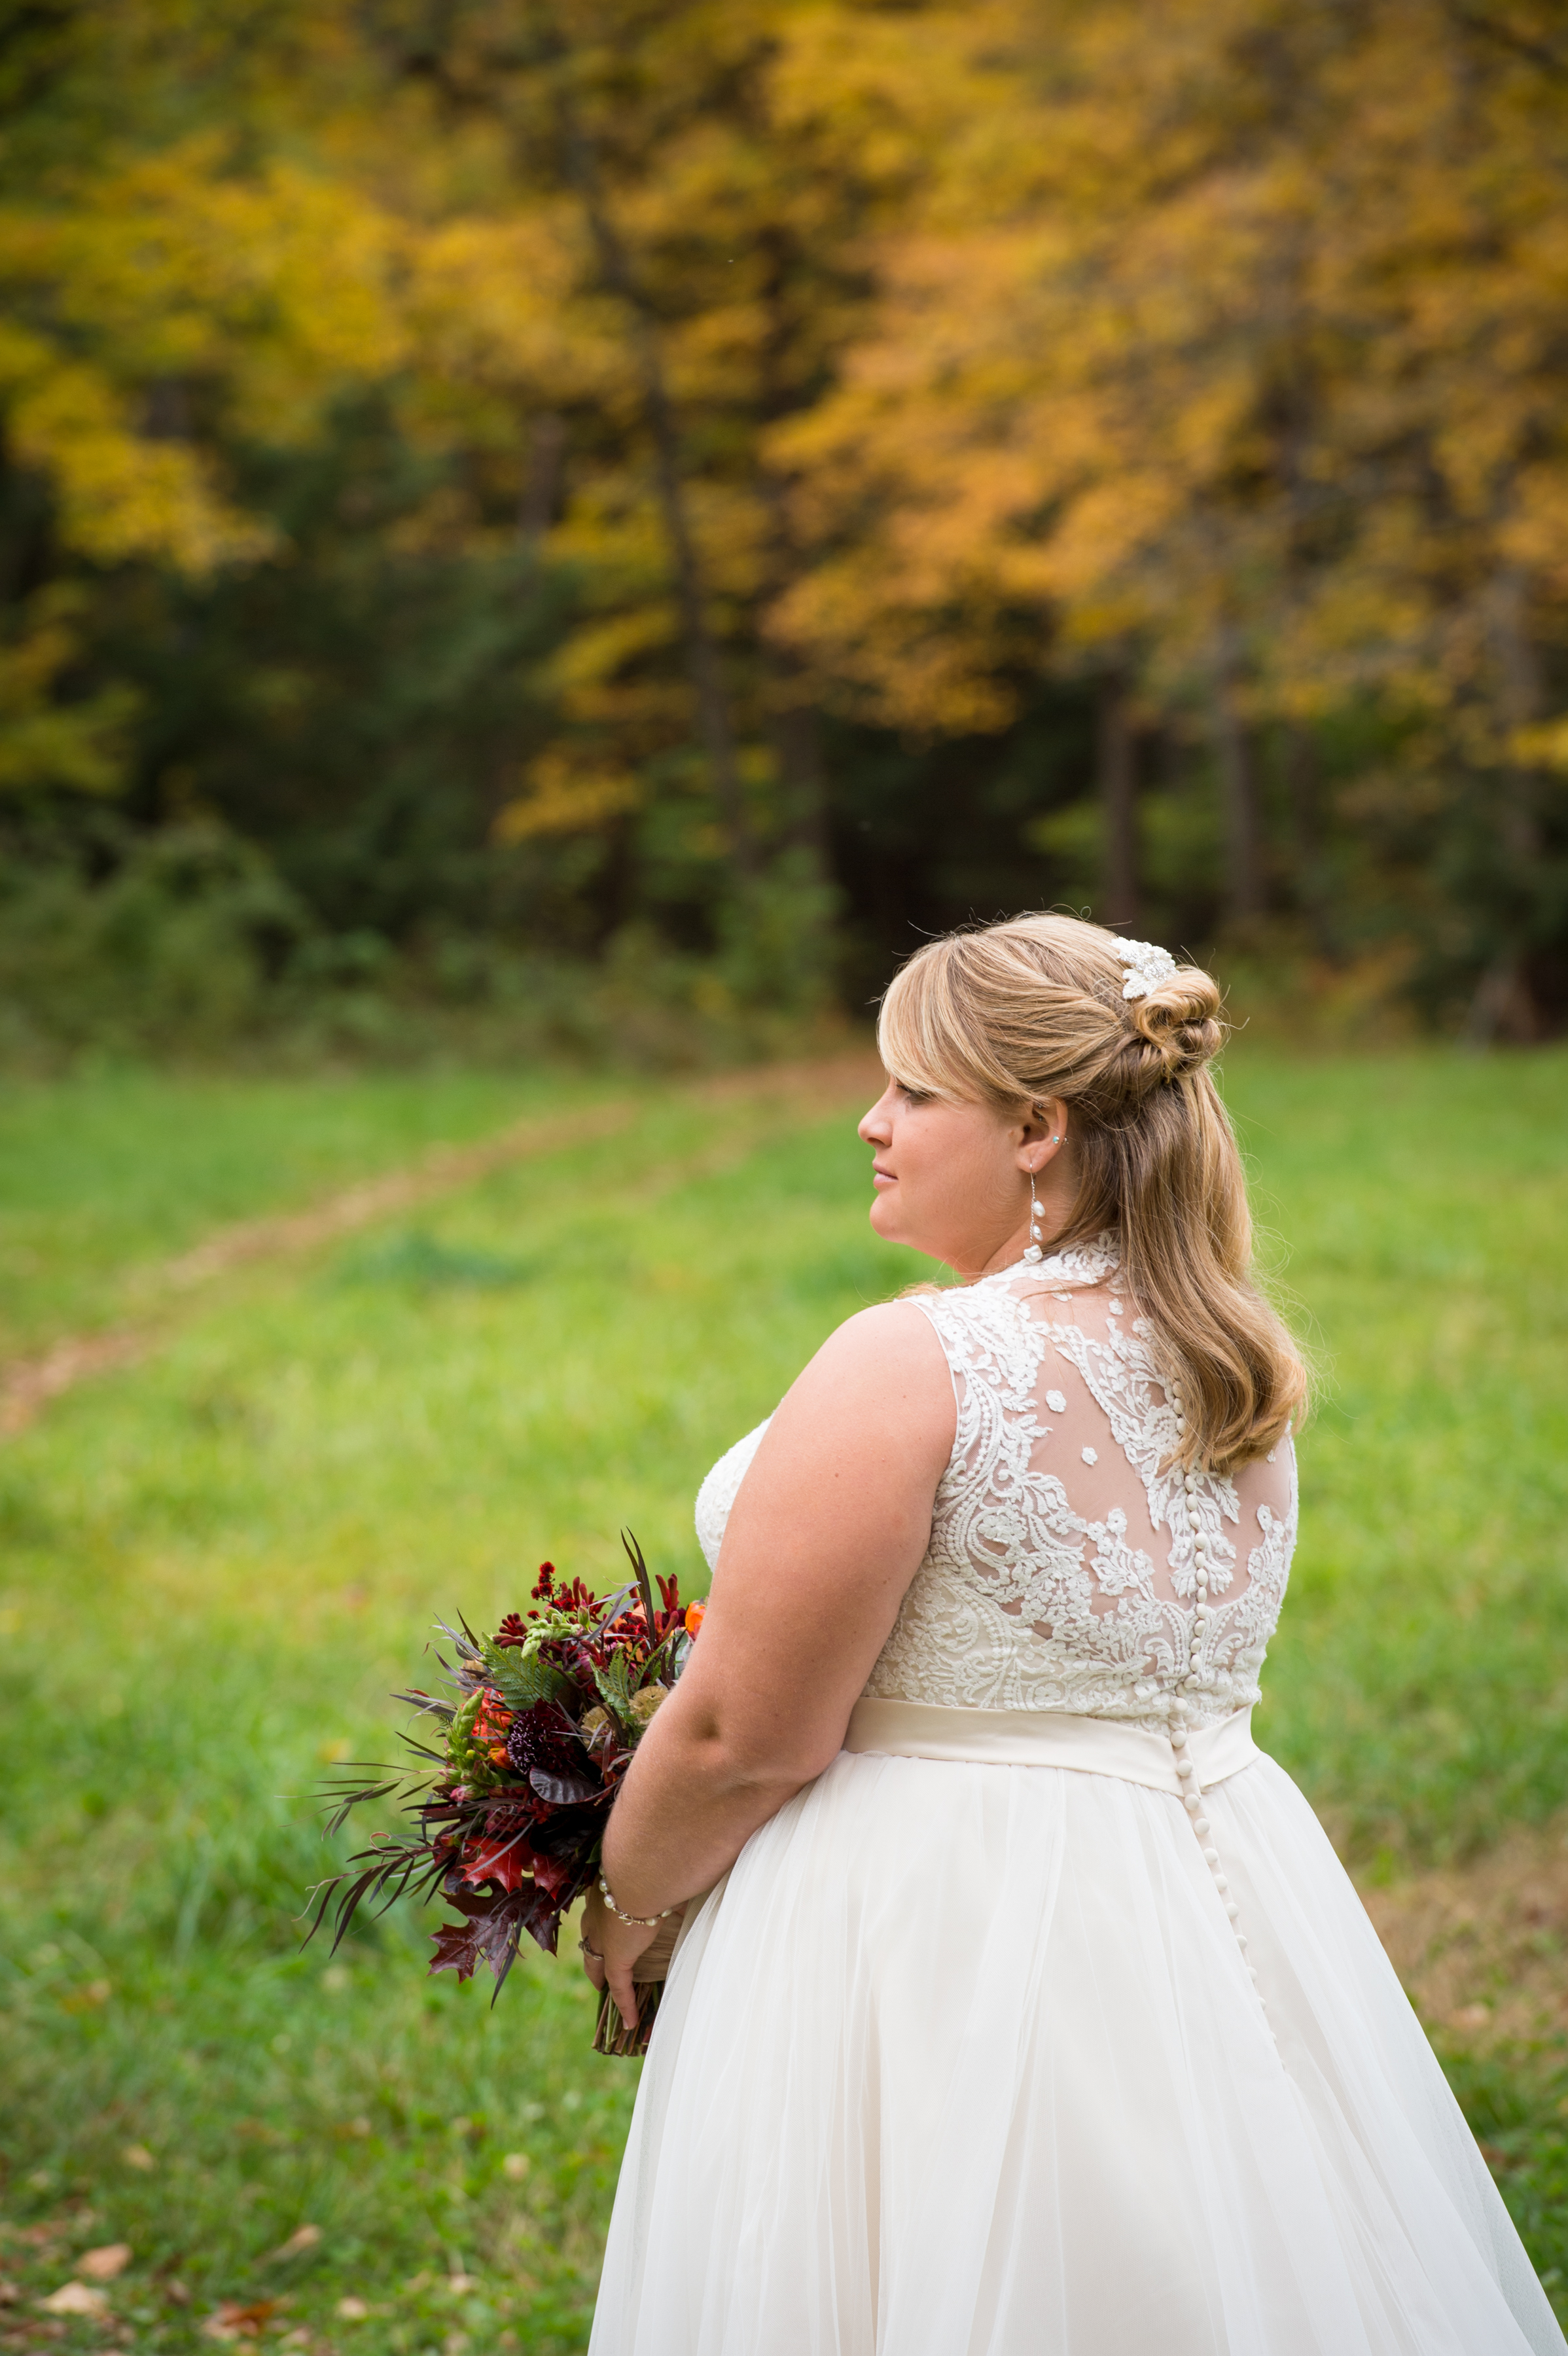 Marrier in wedding dress standing in a field with bouquet during Boston wedding Michelle Schapiro Photography